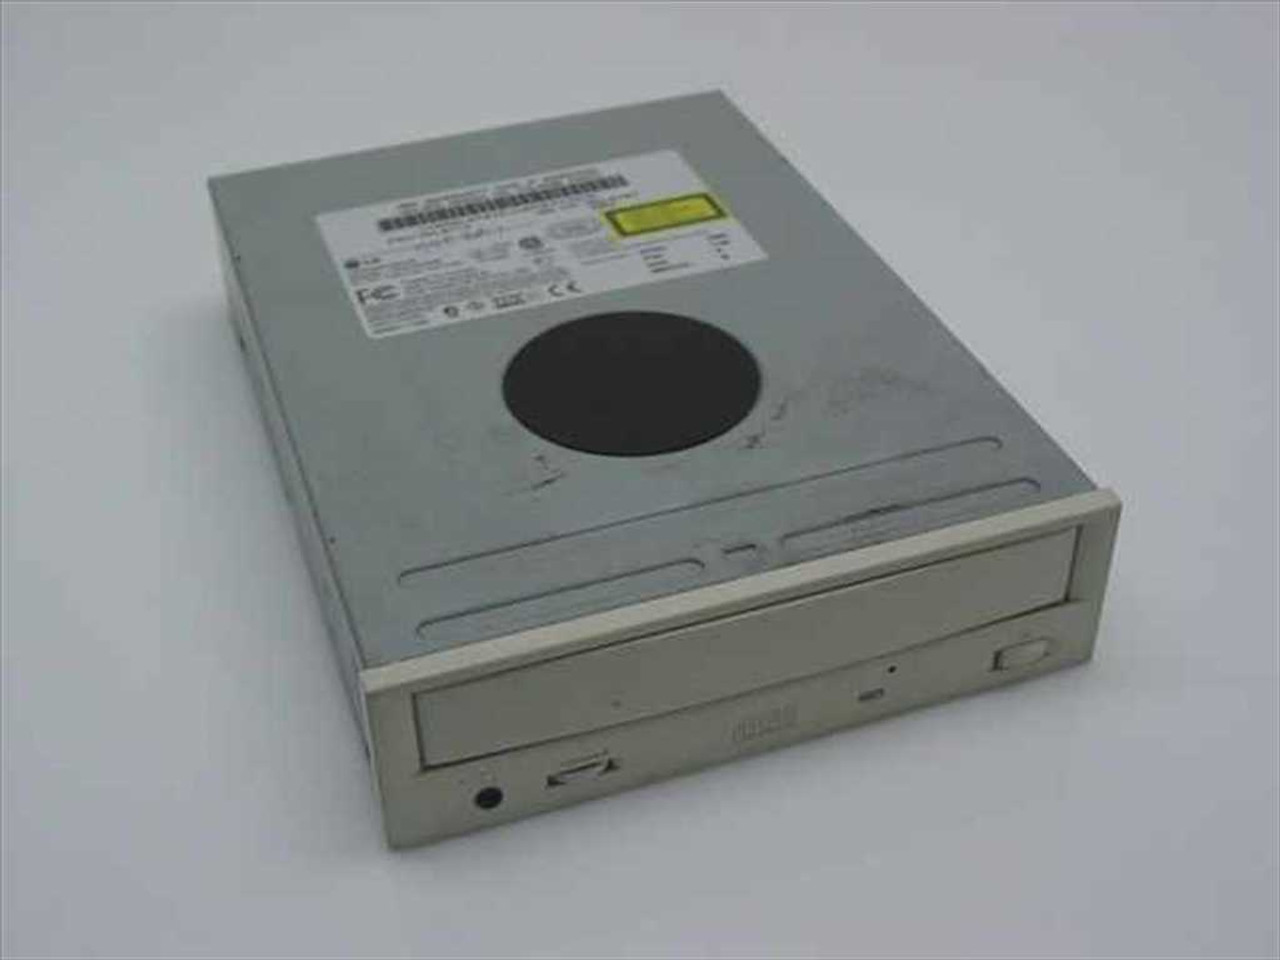 LG CD ROM CRD 8400B DRIVERS WINDOWS 7